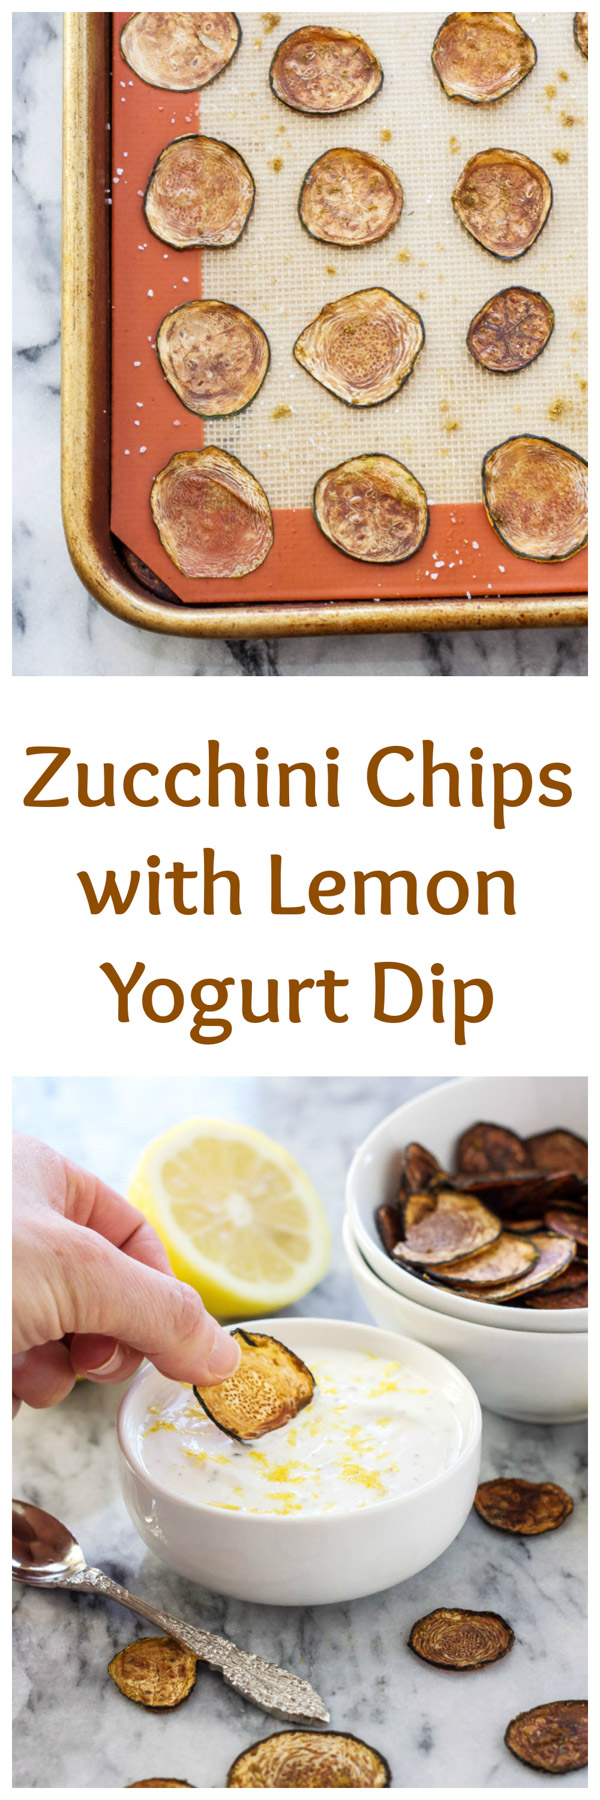 Zucchini Chips with Lemon Yogurt Dip | Crisp, healthy, baked zucchini chips that taste better than a bag of potato chips! | @reciperunner